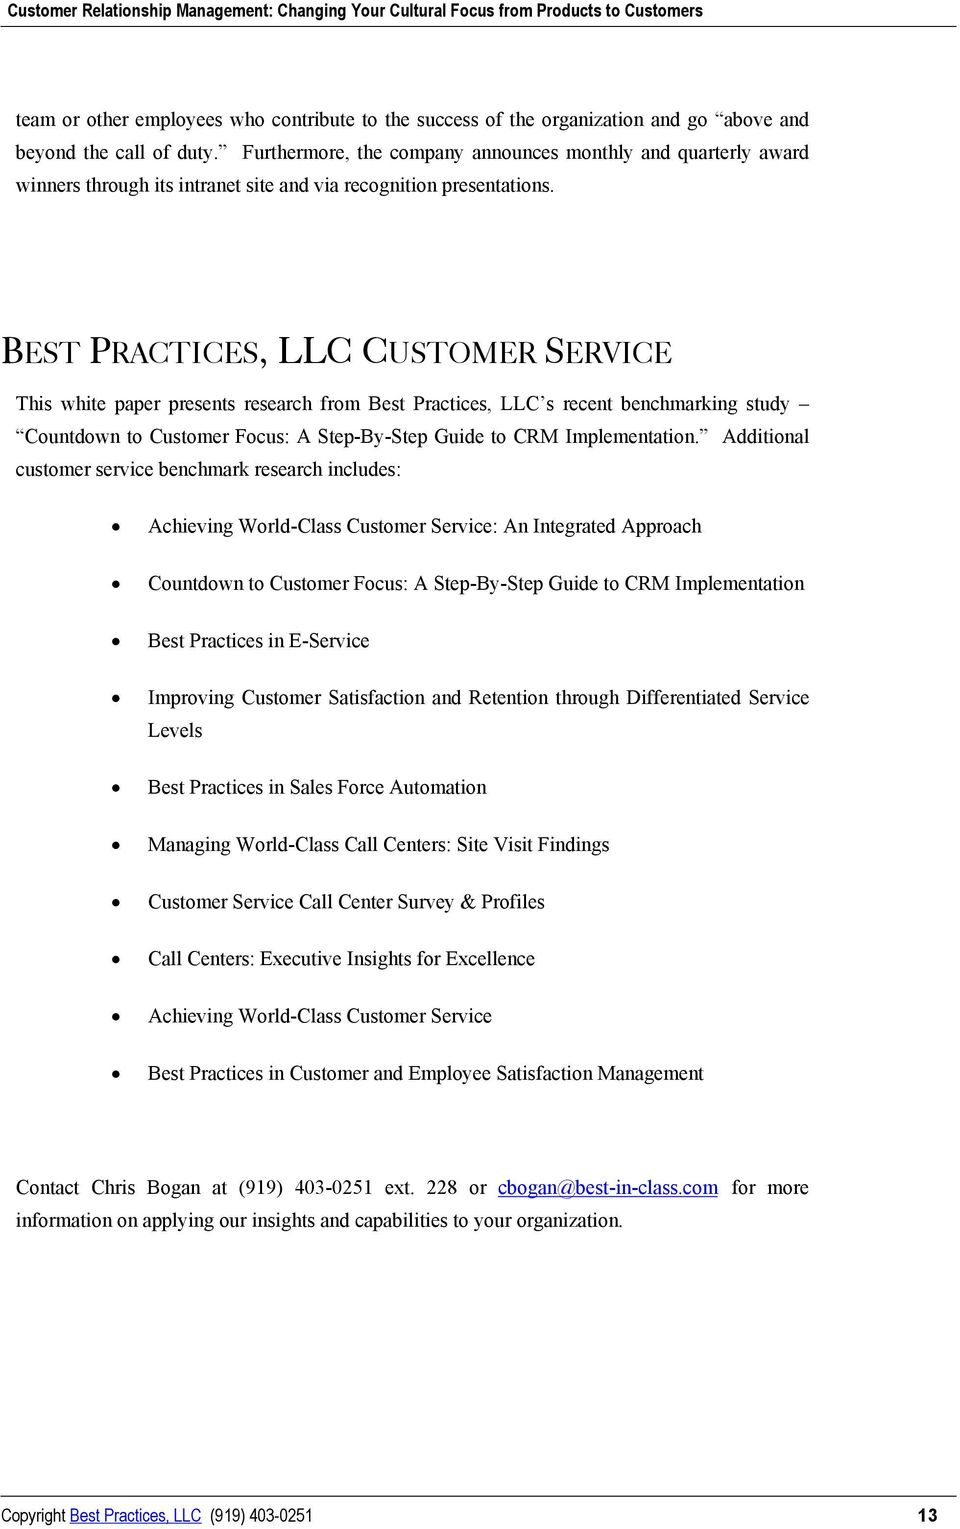 BEST PRACTICES, LLC CUSTOMER SERVICE This white paper presents research from Best Practices, LLC s recent benchmarking study Countdown to Customer Focus: A Step-By-Step Guide to CRM Implementation.